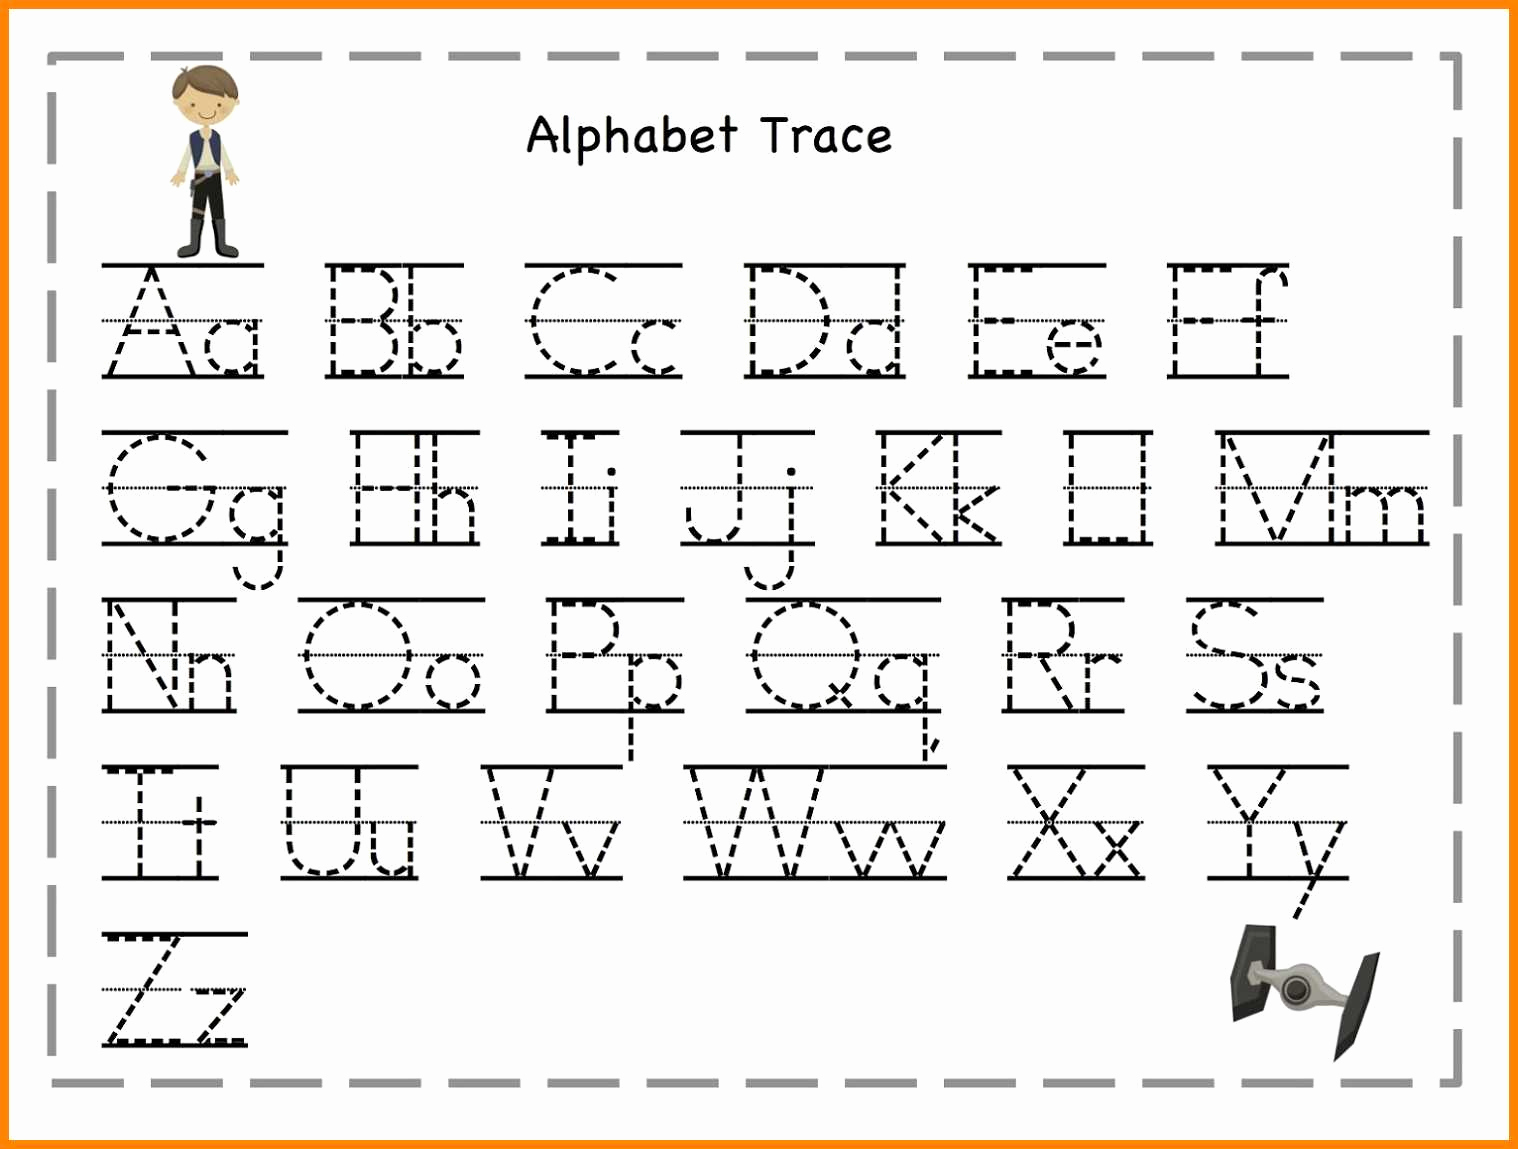 Alphabet Trace Worksheet Awesome Worksheets for Alphabets Tracing